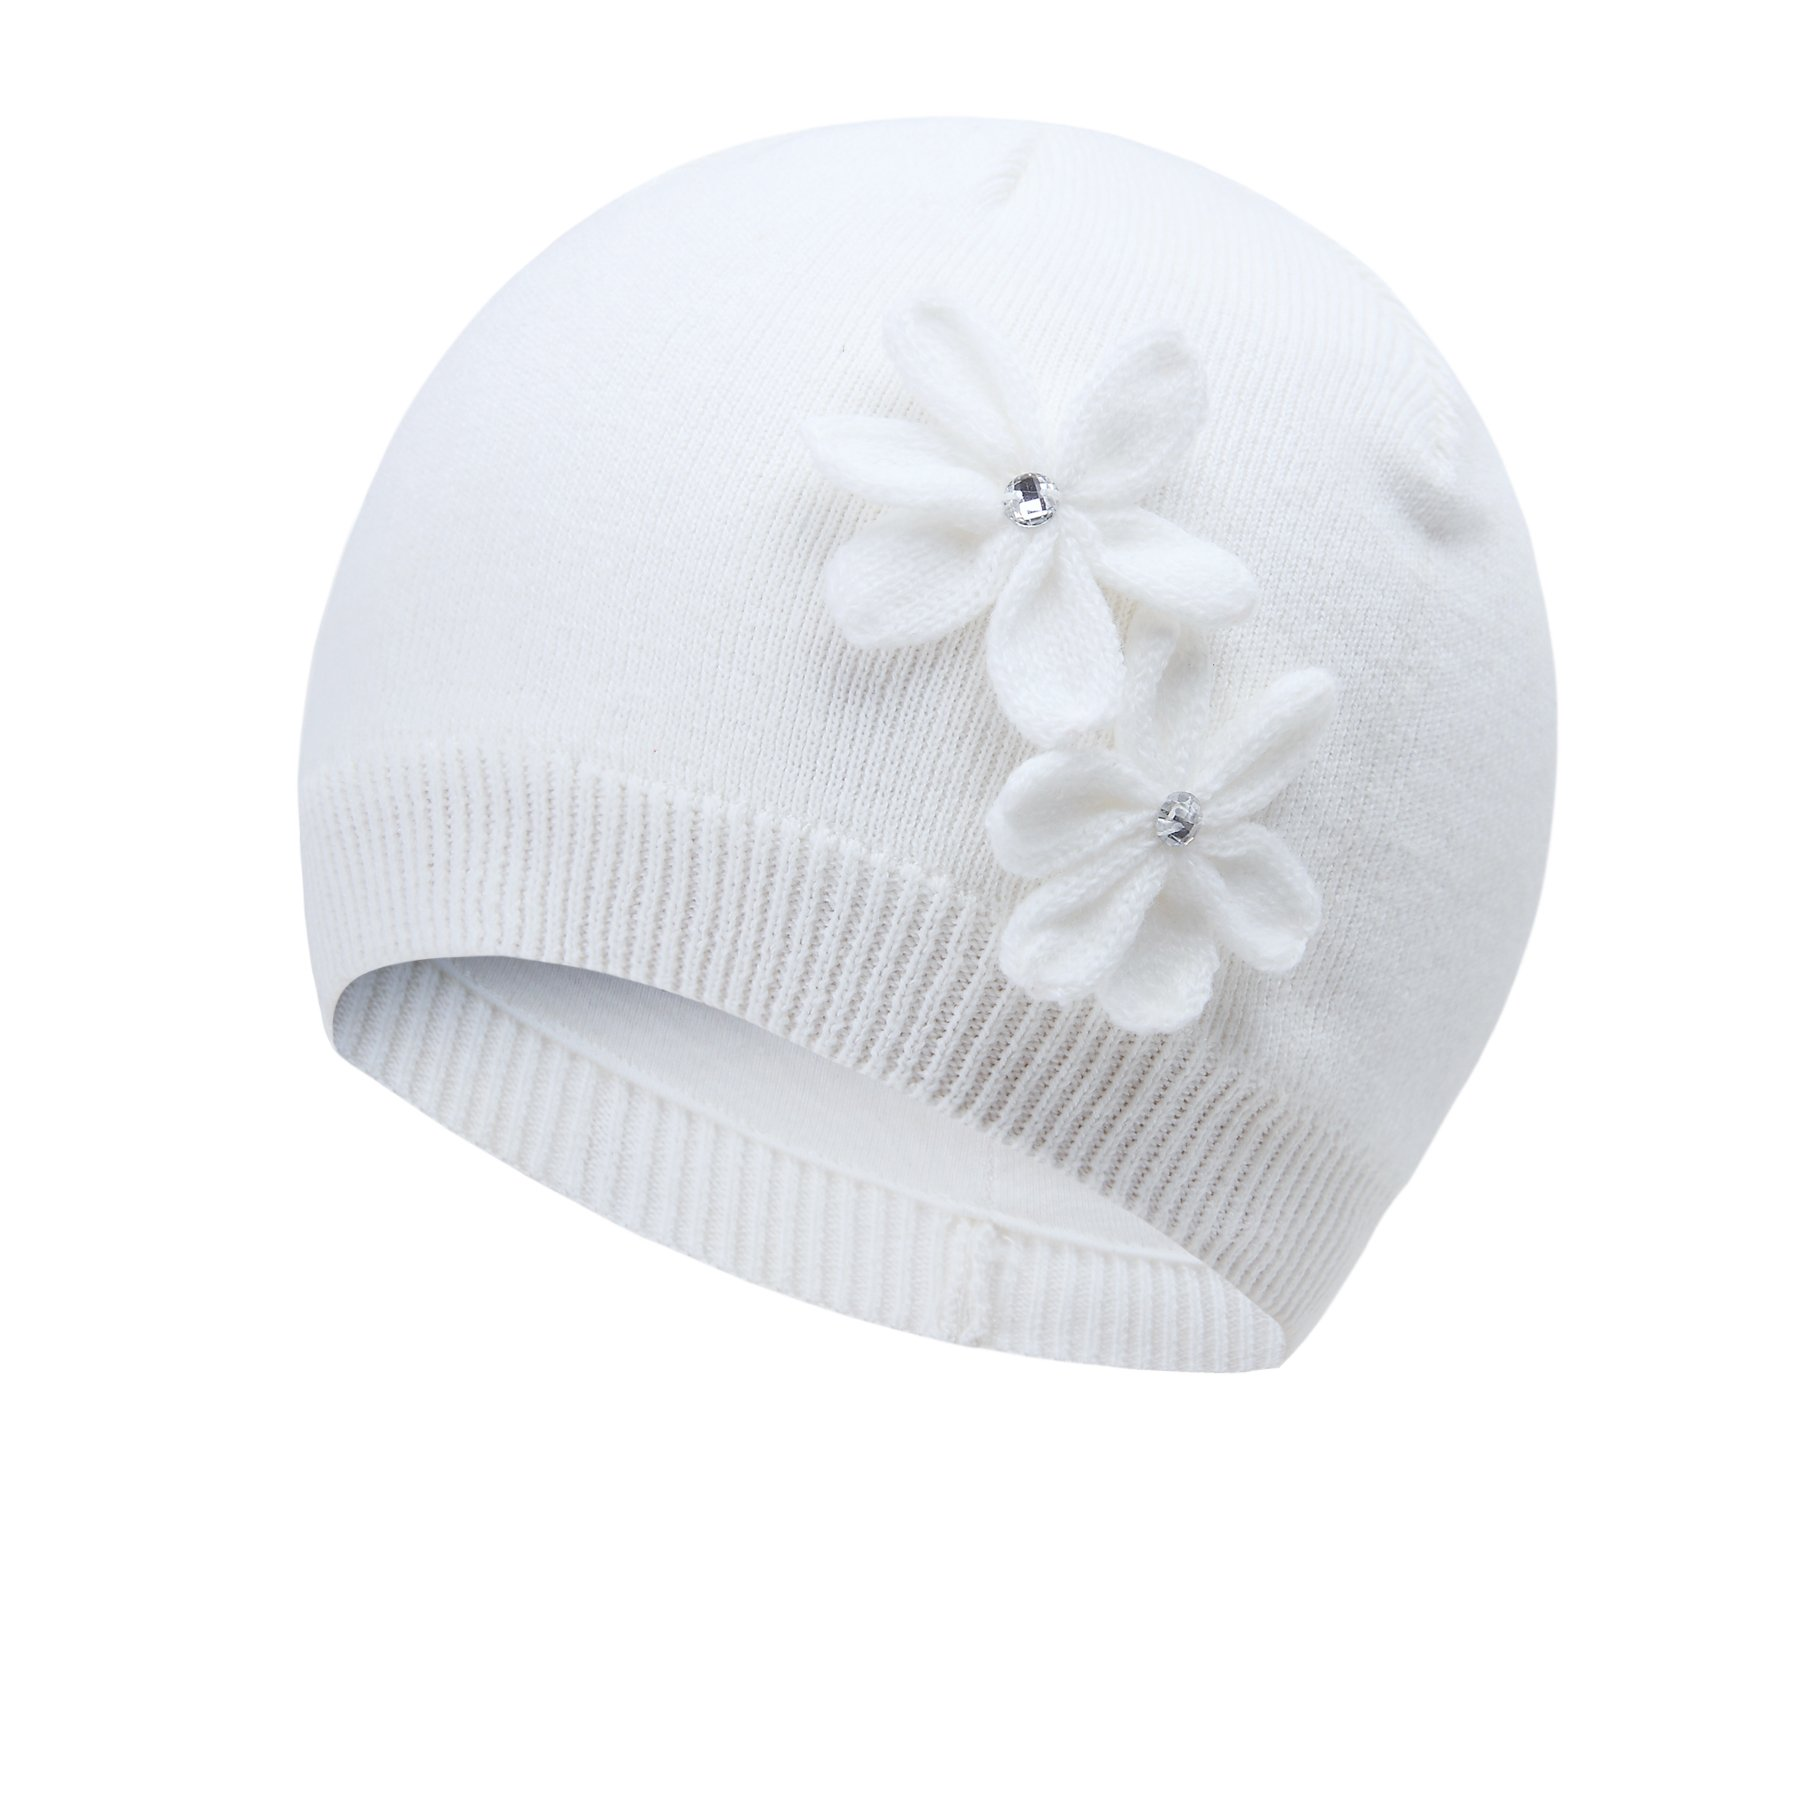 vivobiniya Toddler Girl's Winter Knitted Cap Flower Hat Pink and White 0-6T (1-2Years Old(Head Circumference 17.3in-18.8in), White